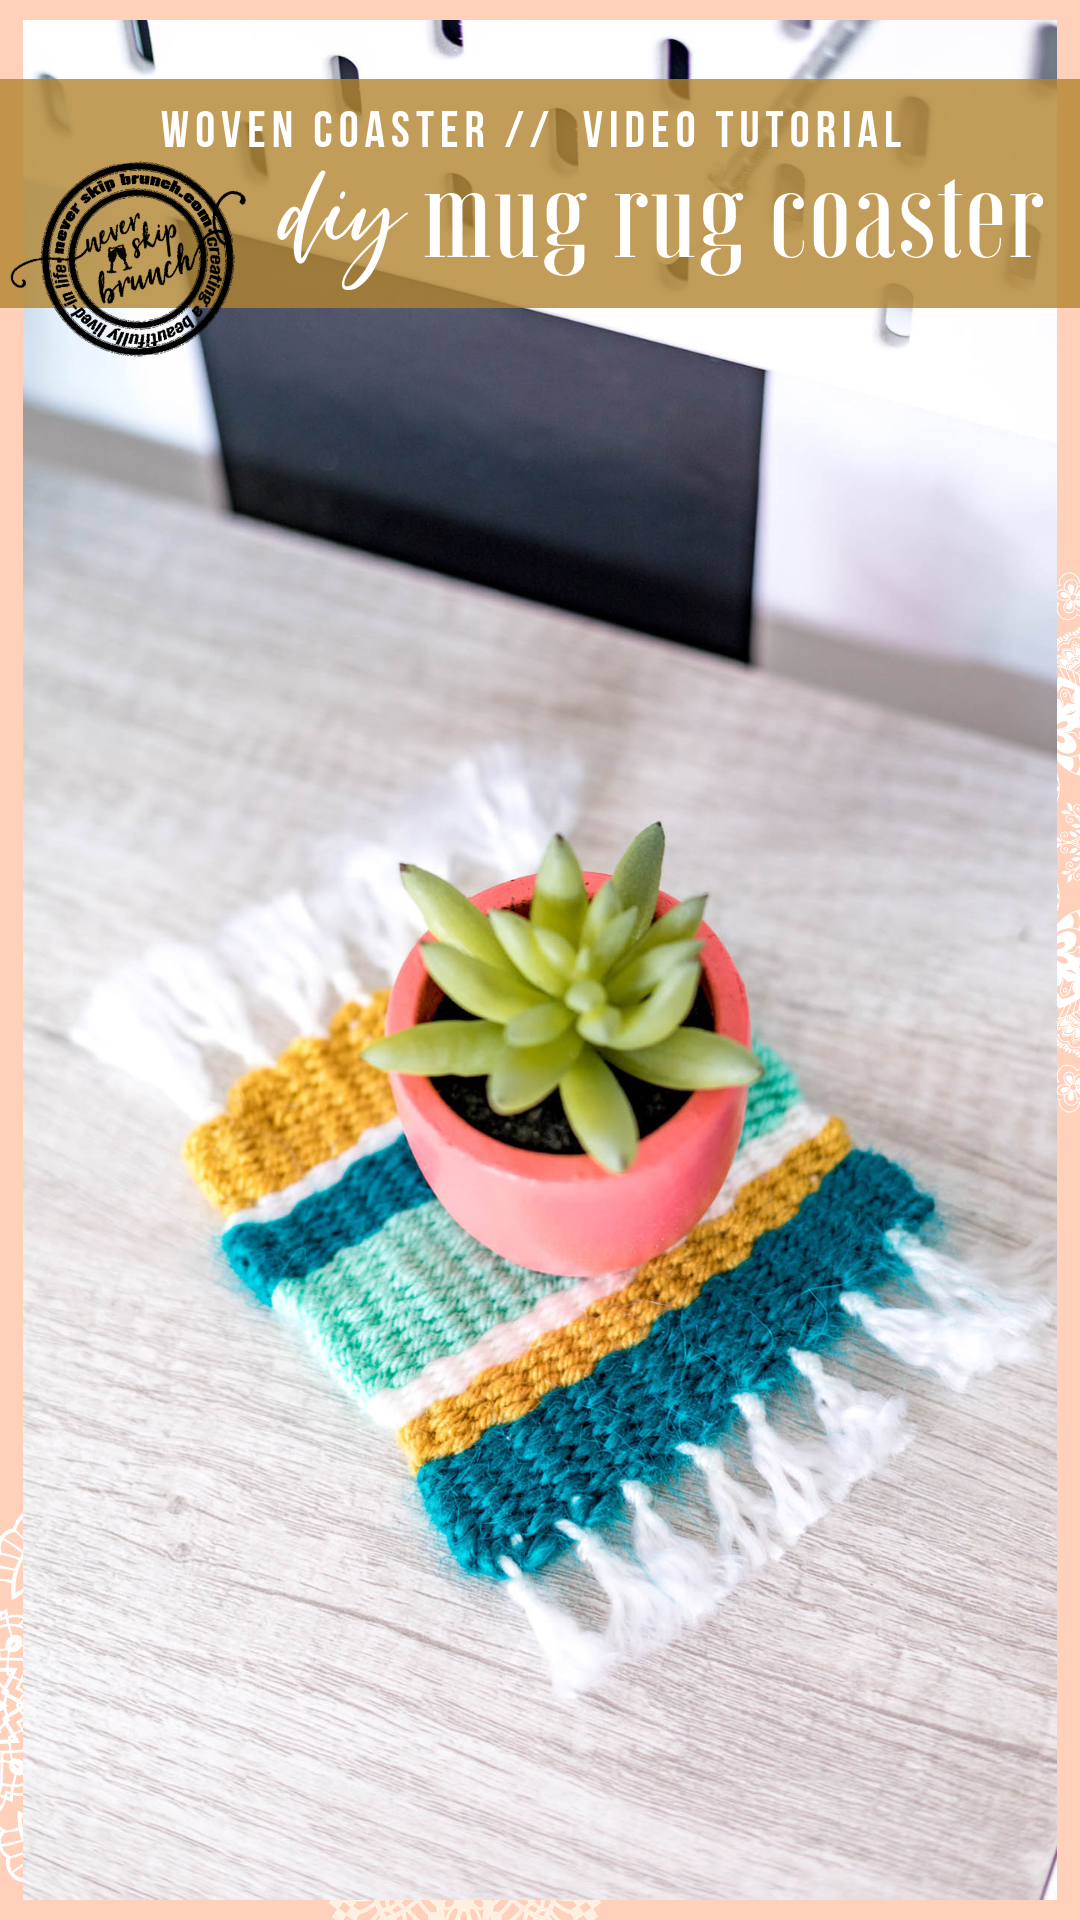 EASY BOHO CHIC DECOR!  Coaster DIY Yarn | coaster diy ideas | coaster diy easy | woven coasters | woven coasters diy | woven coasters diy free pattern | Never Skip Brunch by Cara Newhart | #neverskipbrunch #DIY #decor #yarn #boho